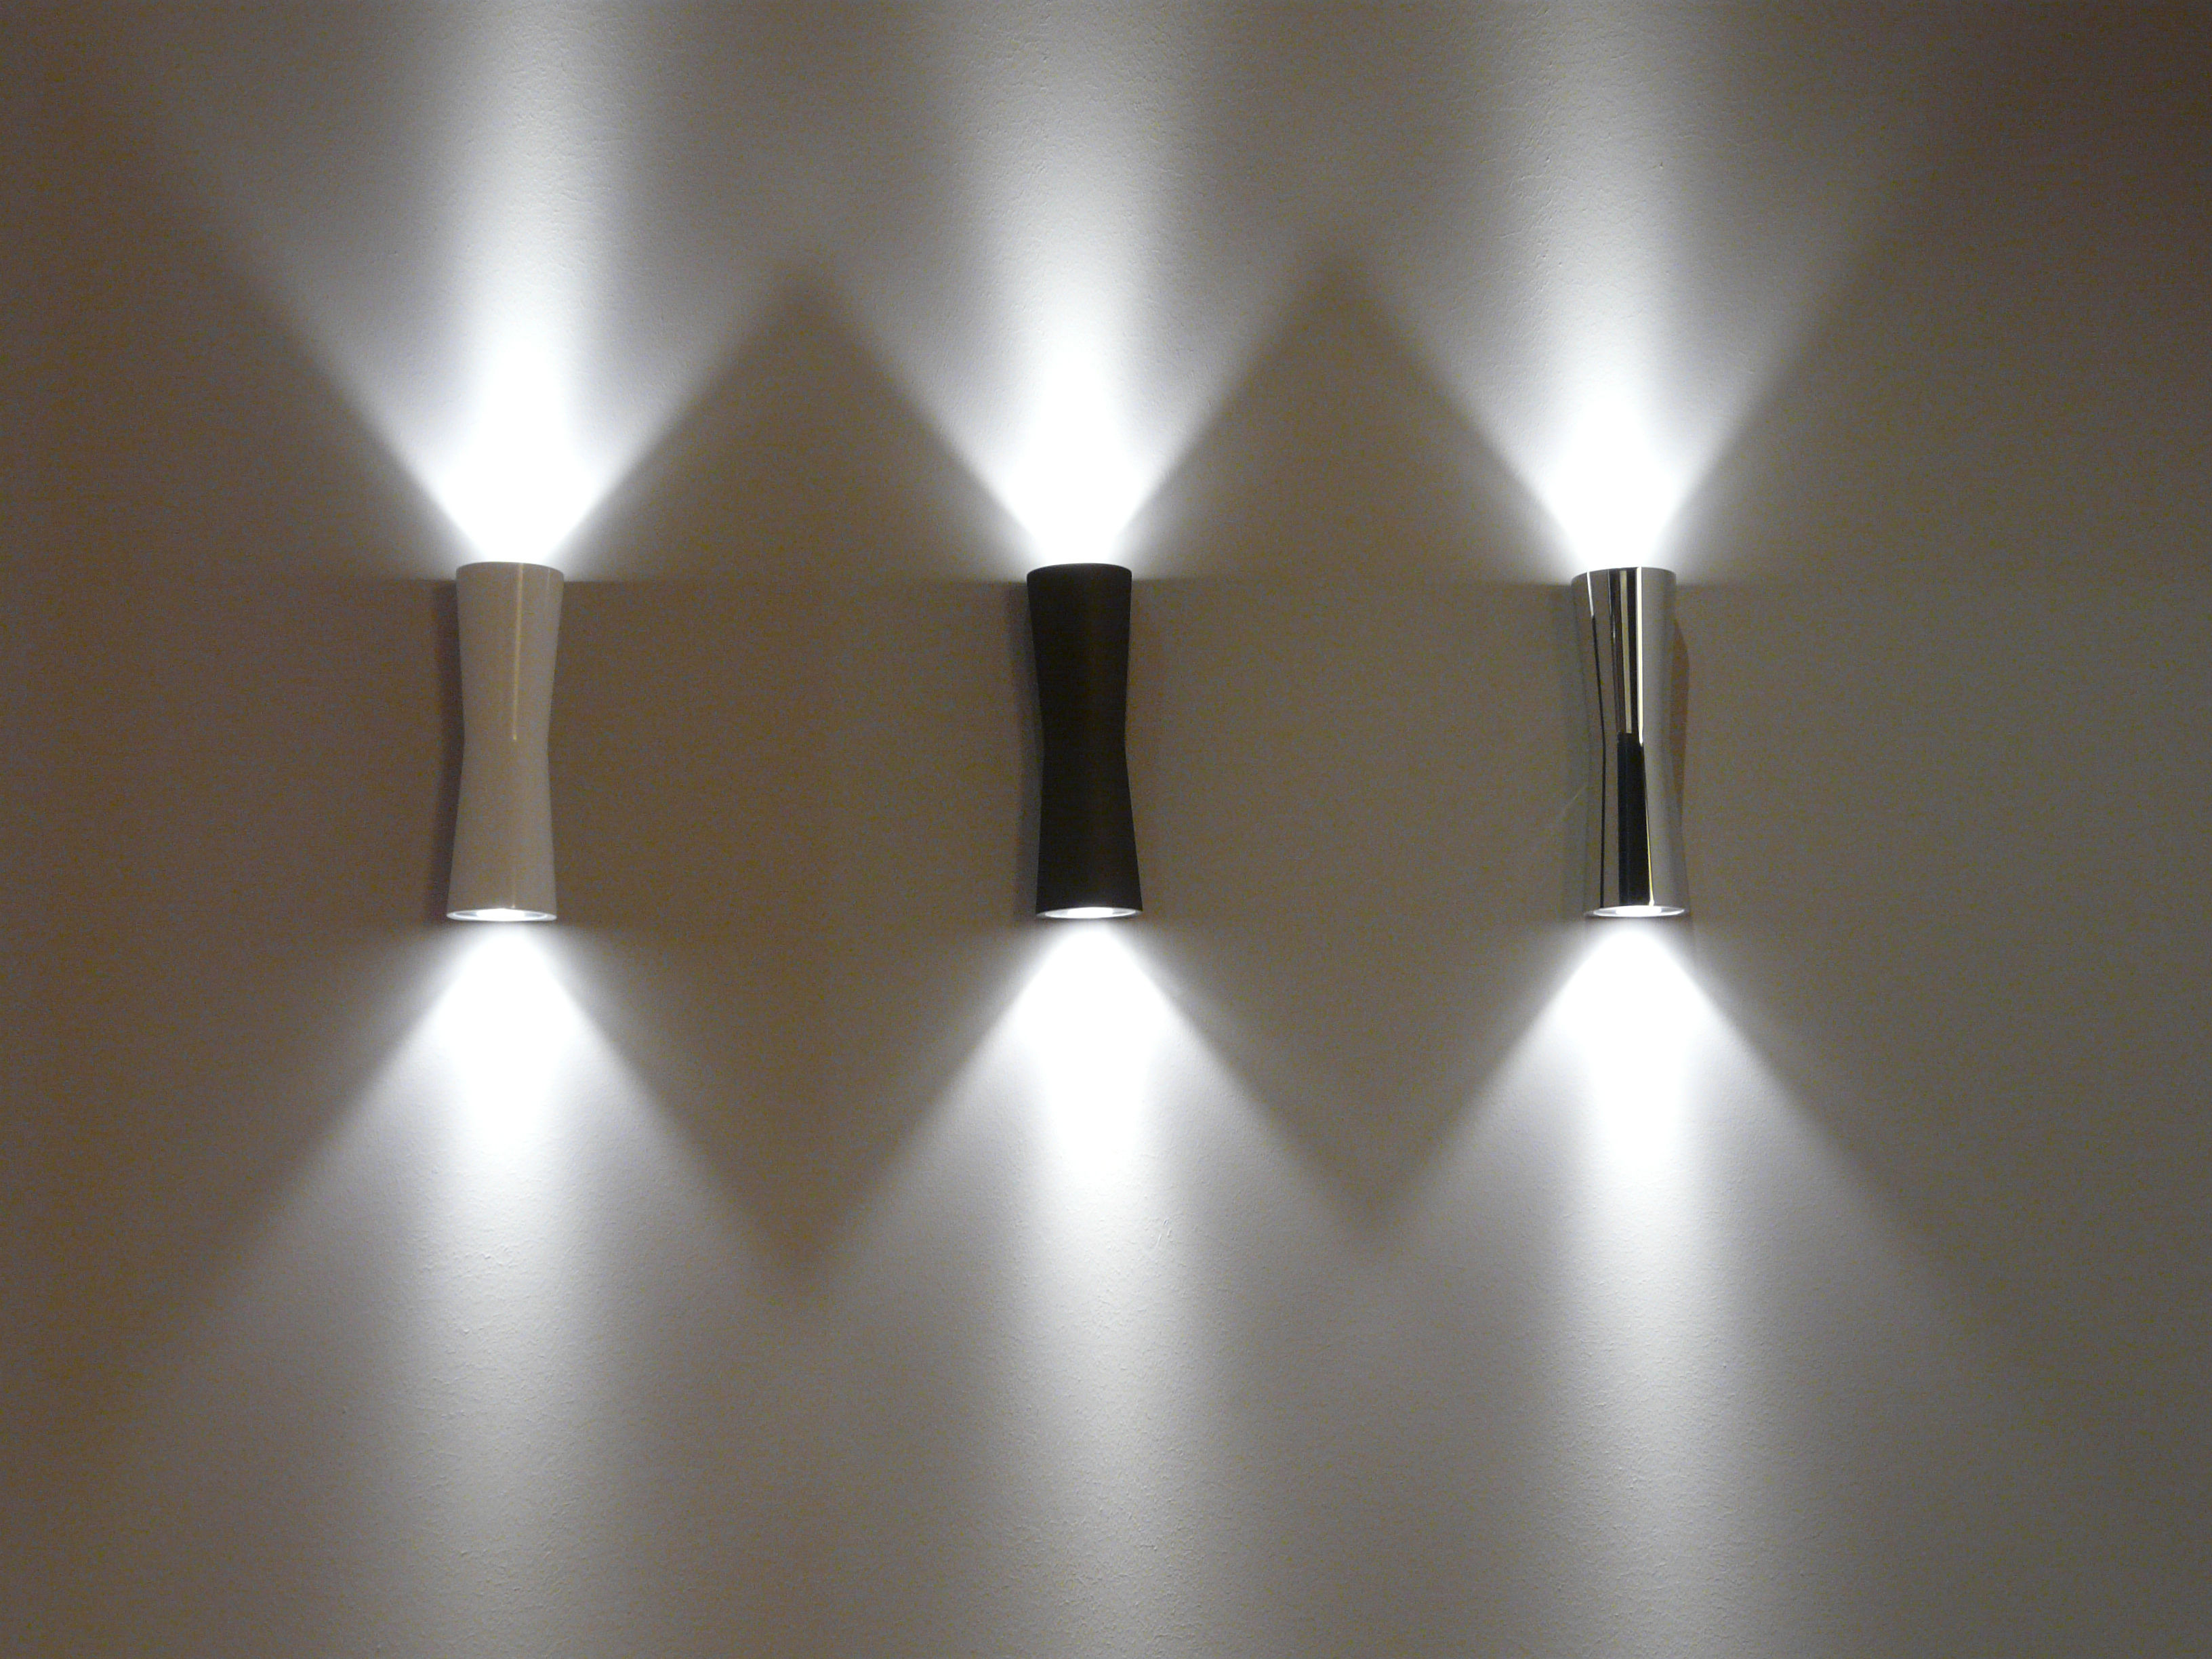 Clessidra 40° applique led per linterno cromato by flos made